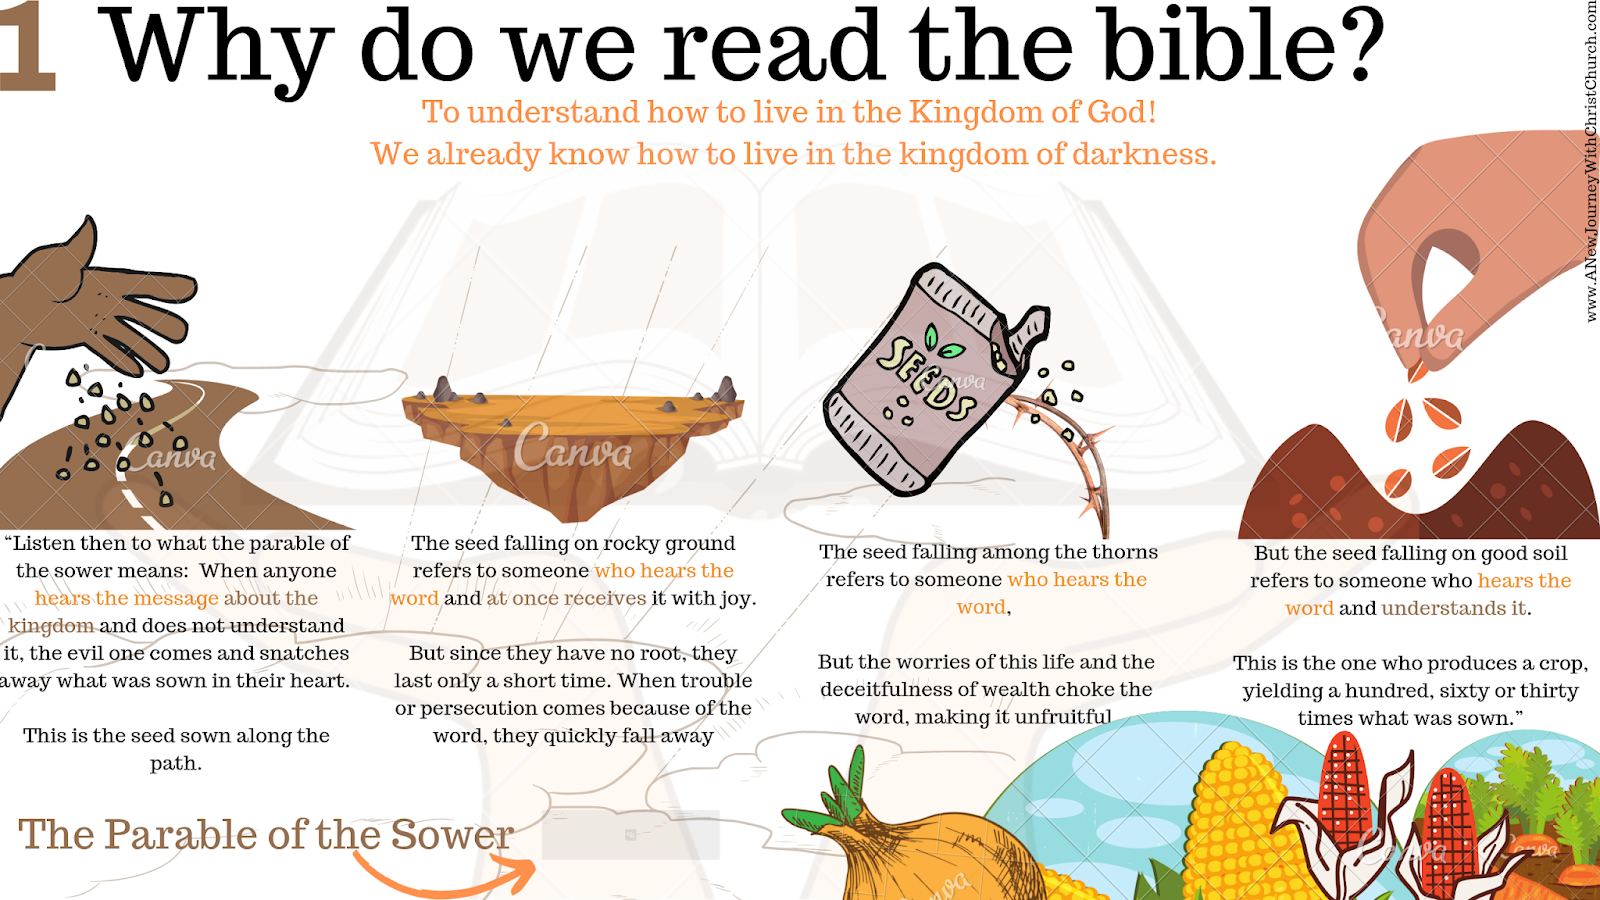 Why do we read the bible?